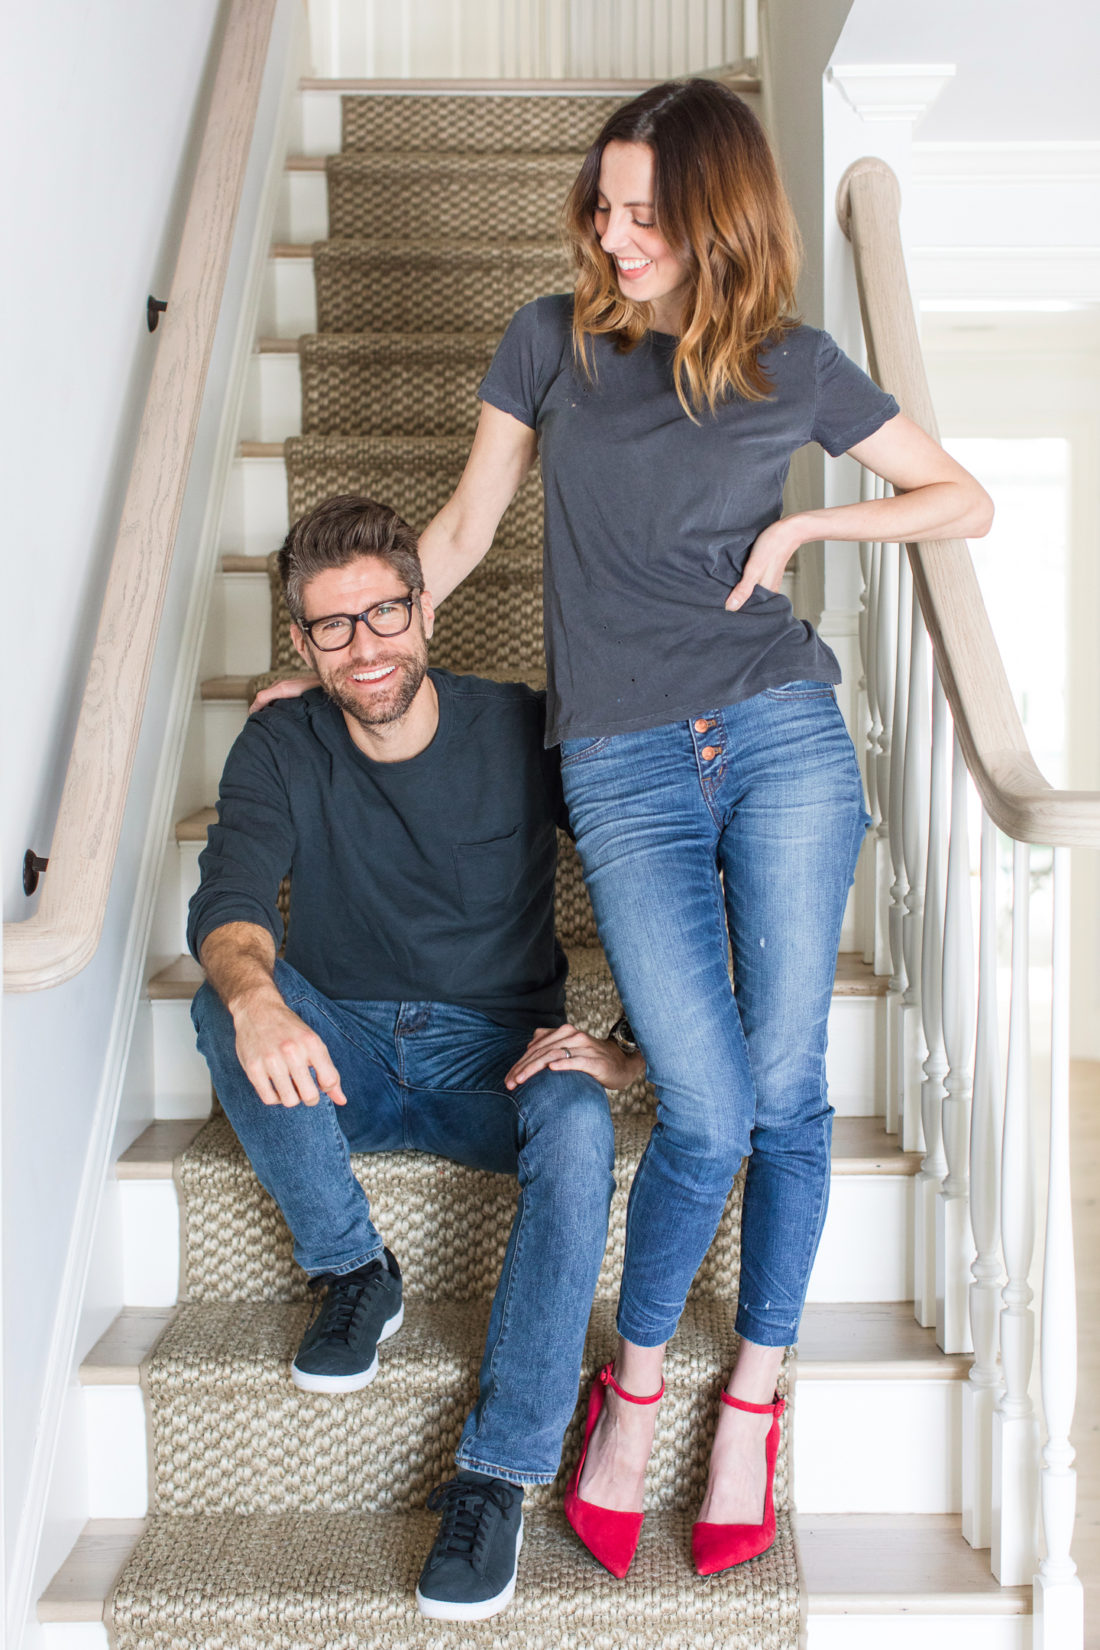 Eva Amurri Martino and Kyle Martino pose together on the stairway of their Connecticut home